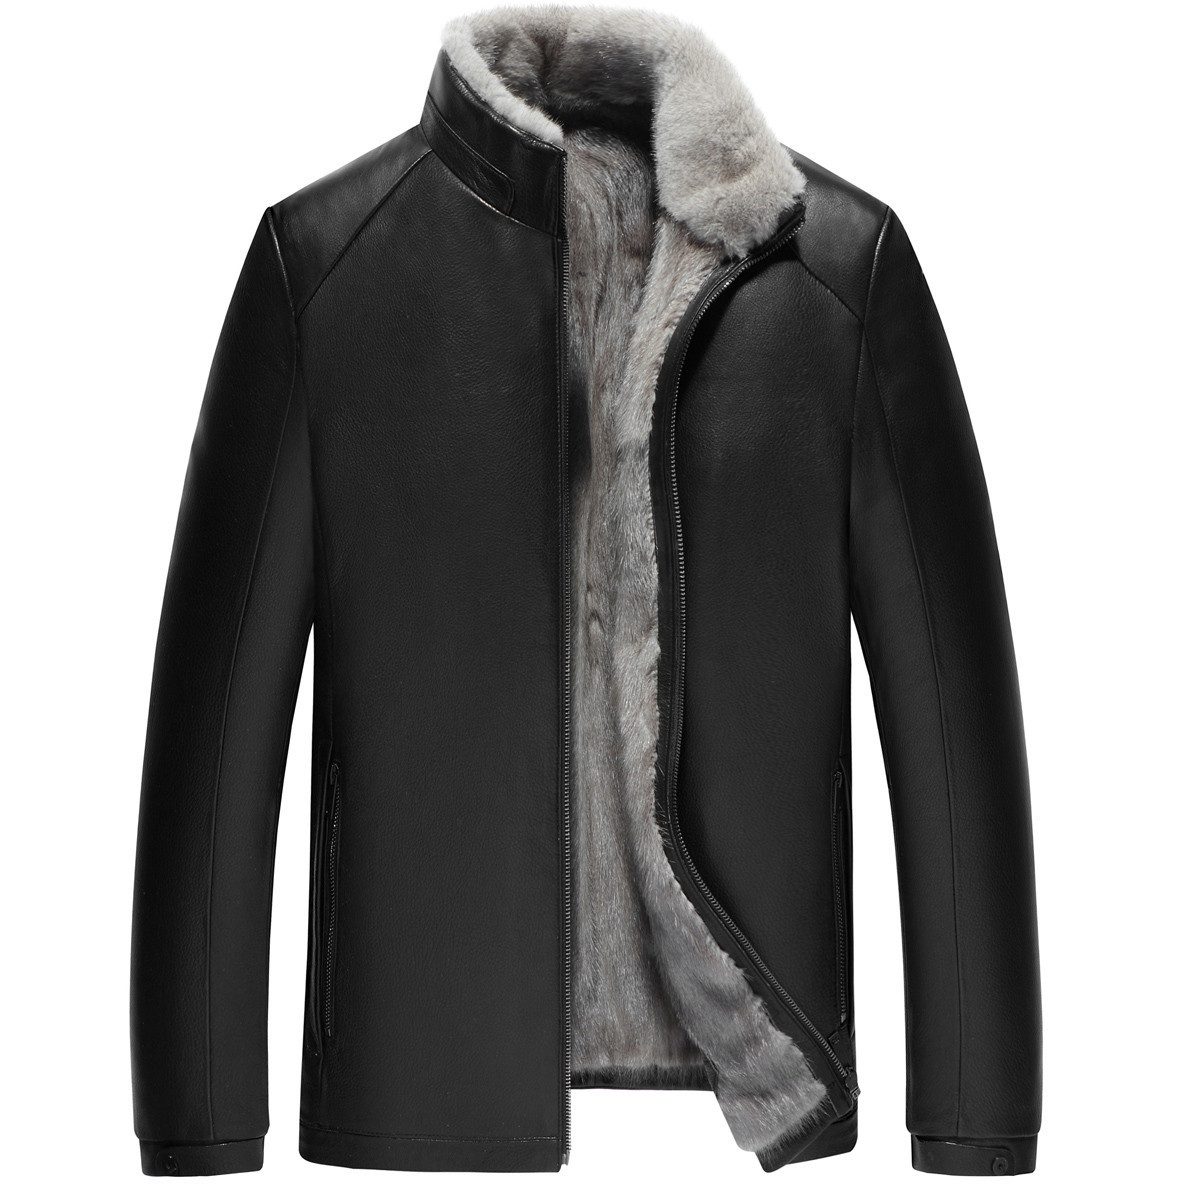 Genuine Leather Jacket Men Real Mink Fur Liner Coat Winter Jacket Men Real Goatskin Warm Jackets Plus Size Chaqueta Hombre Y1652